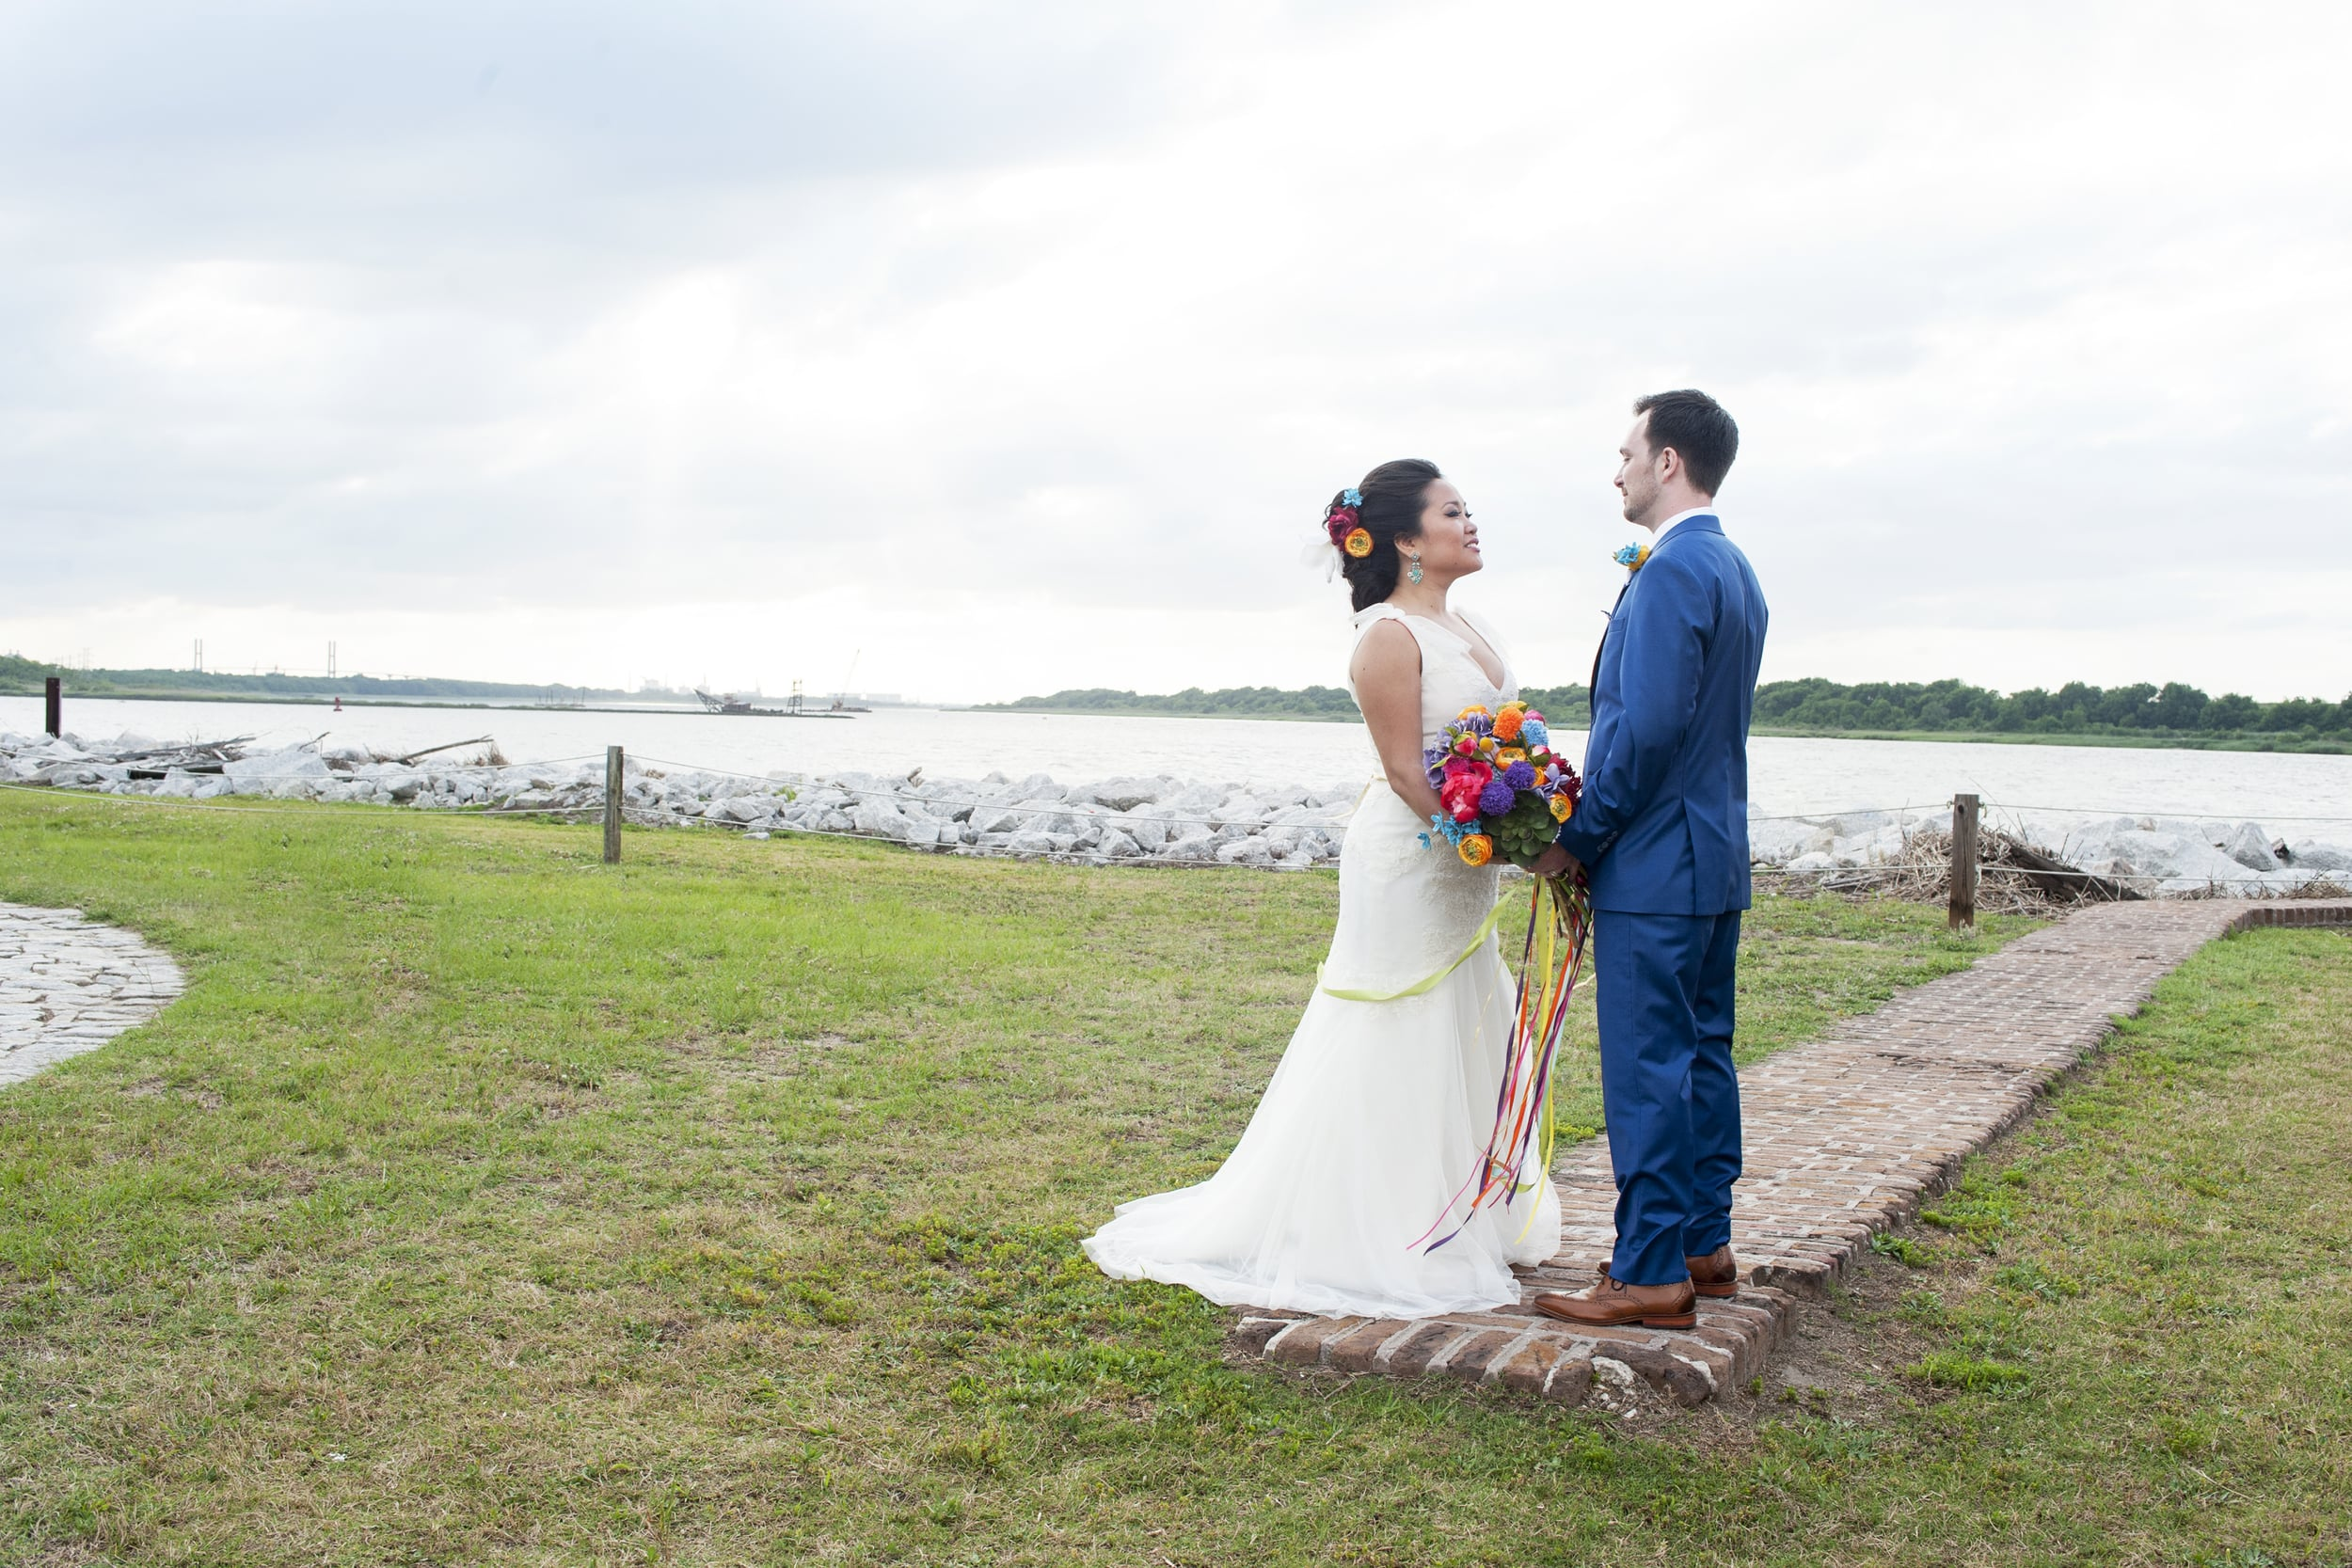 jeff-and-mollie-take-pictures-ivory-and-beau-wedding-planning-ivory-and-beau-bridal-boutique-old-fort-jackson-wedding-colorful-wedding-savannah-wedding-planner-savannah-weddings-michelle-and-johnny-wedding-savannah-weddings-indie-wedding-37.jpg